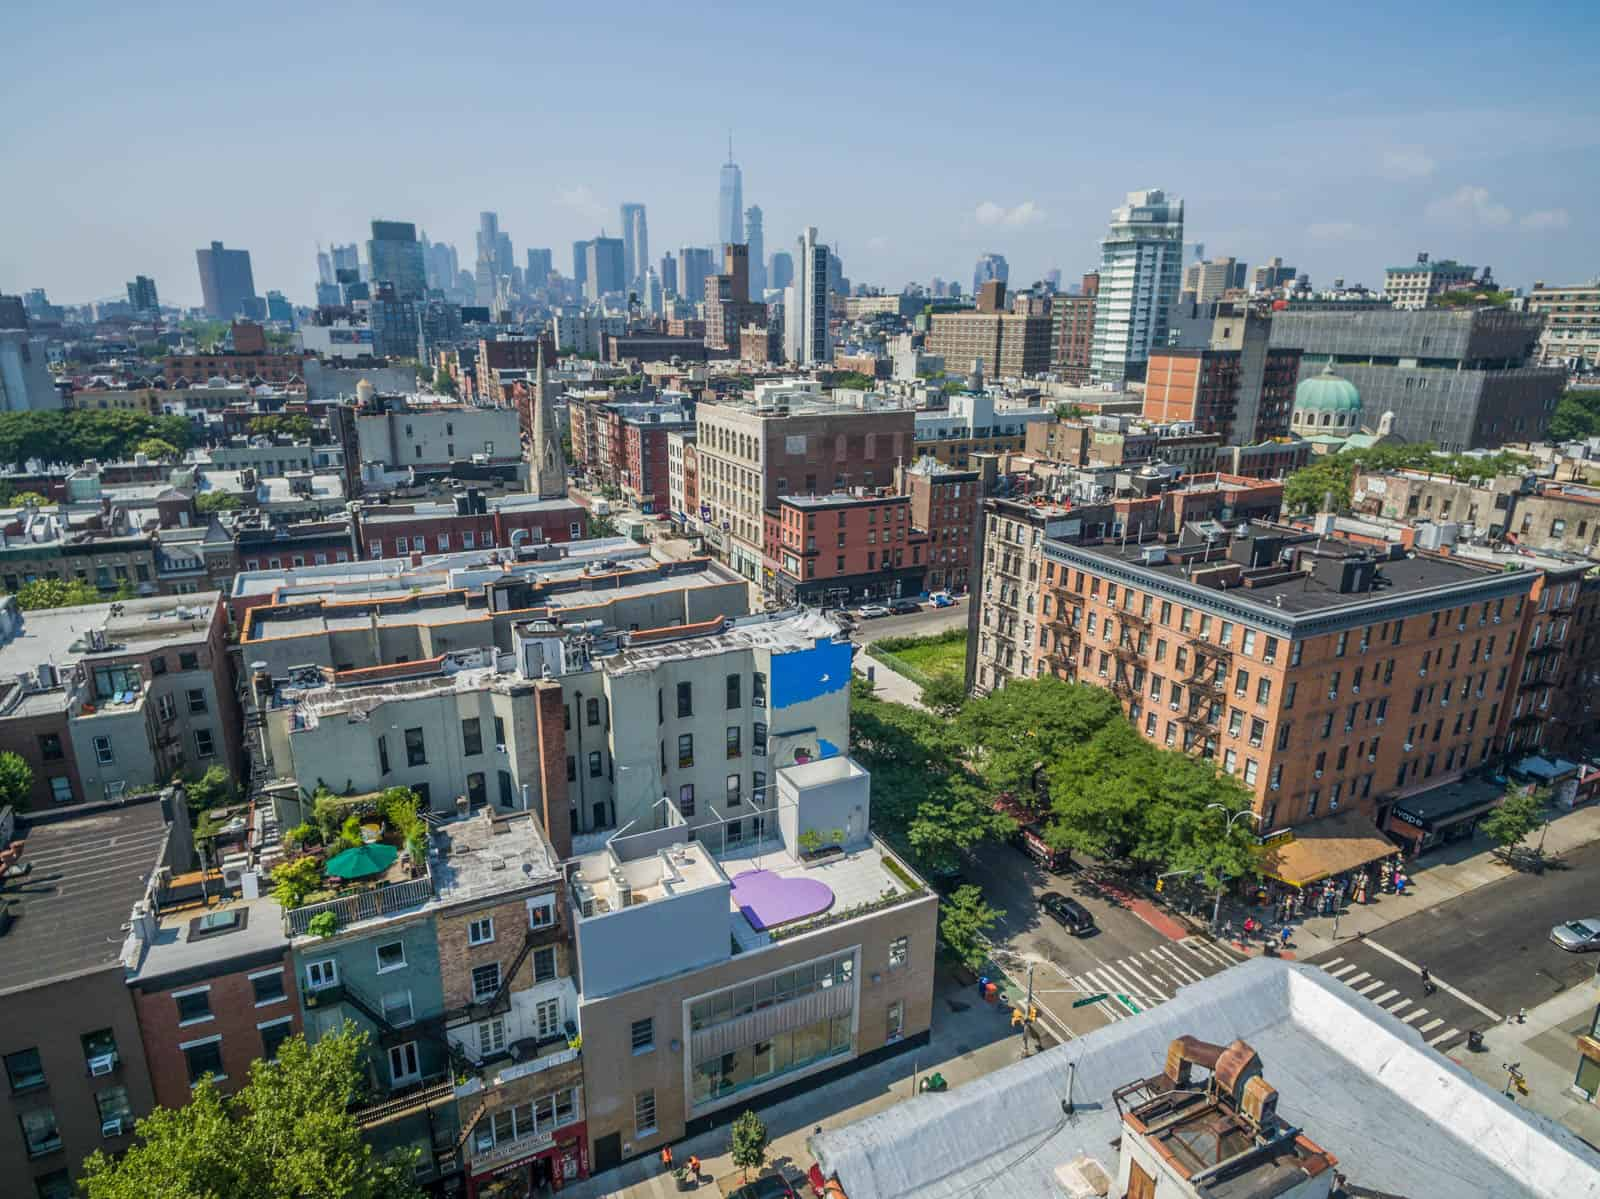 aerial drone photos of buildings in Williamsburg, Brooklyn, New York